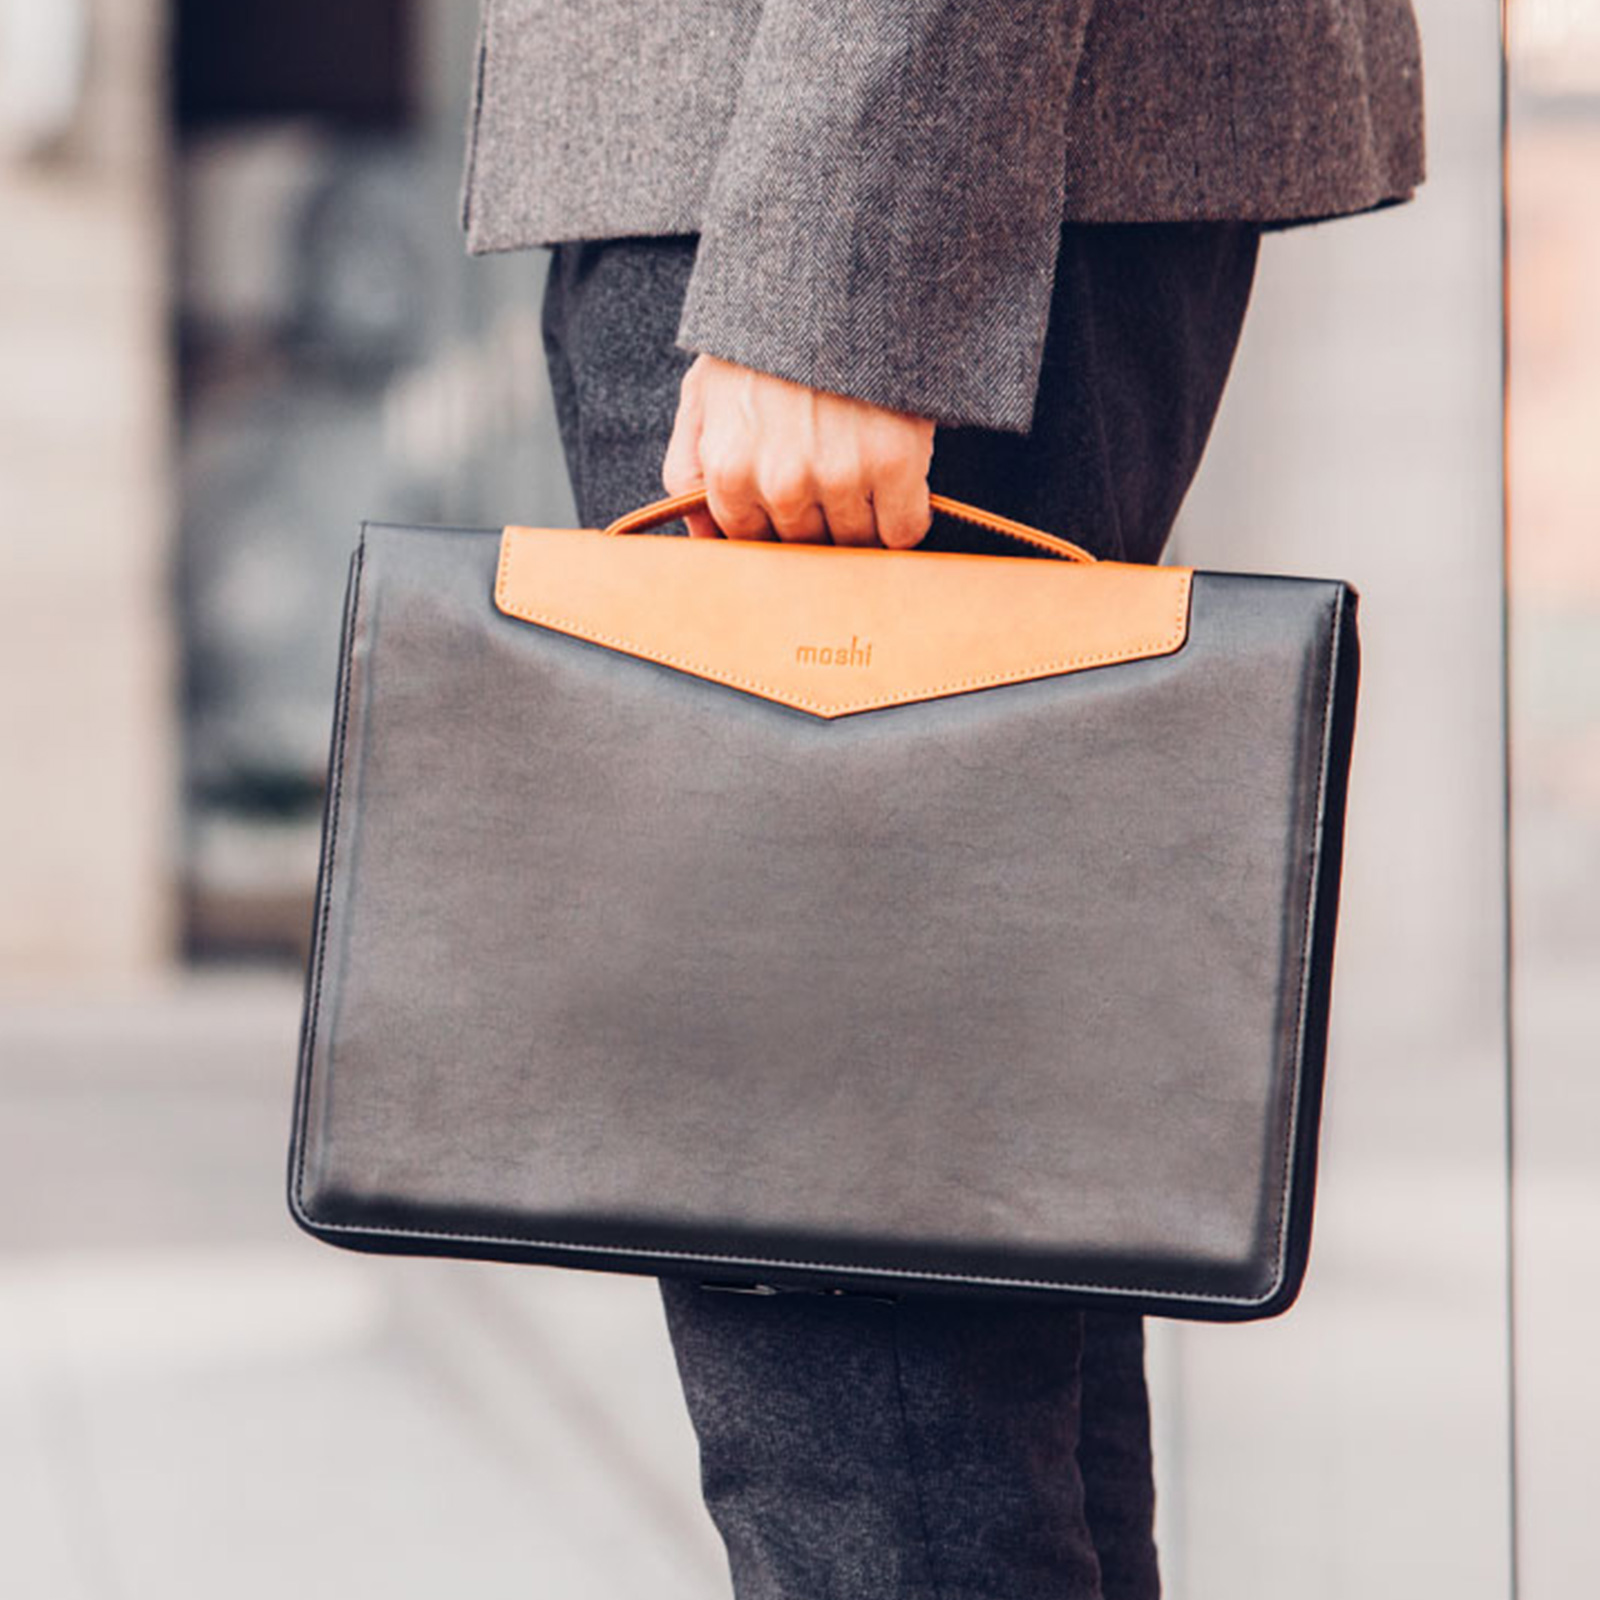 Moshi Codex Carry Case for MacBook Pro Review